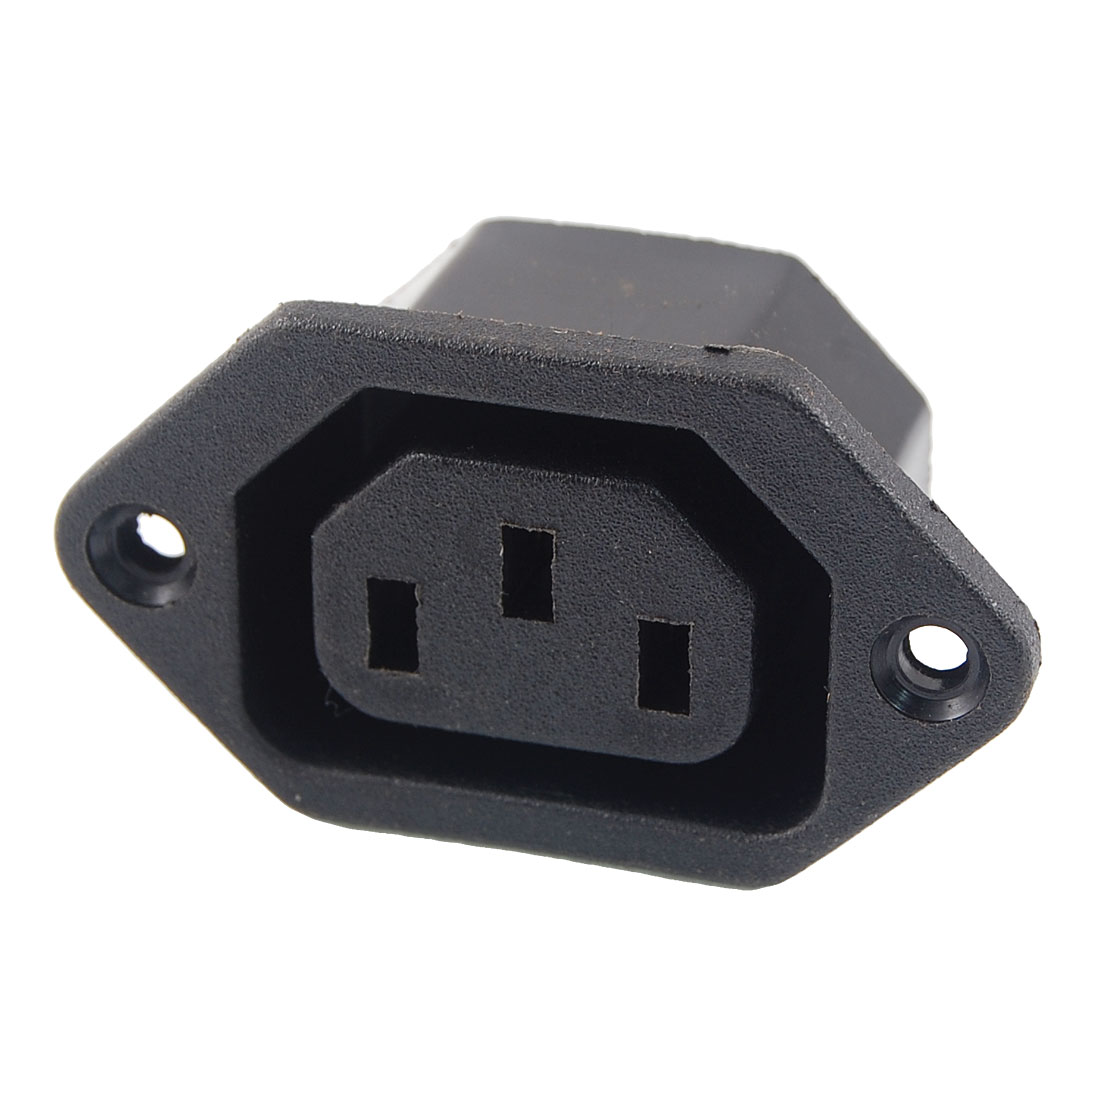 AC 250V 10A 3 Terminals C13 Plug Outlet Power Socket Connector